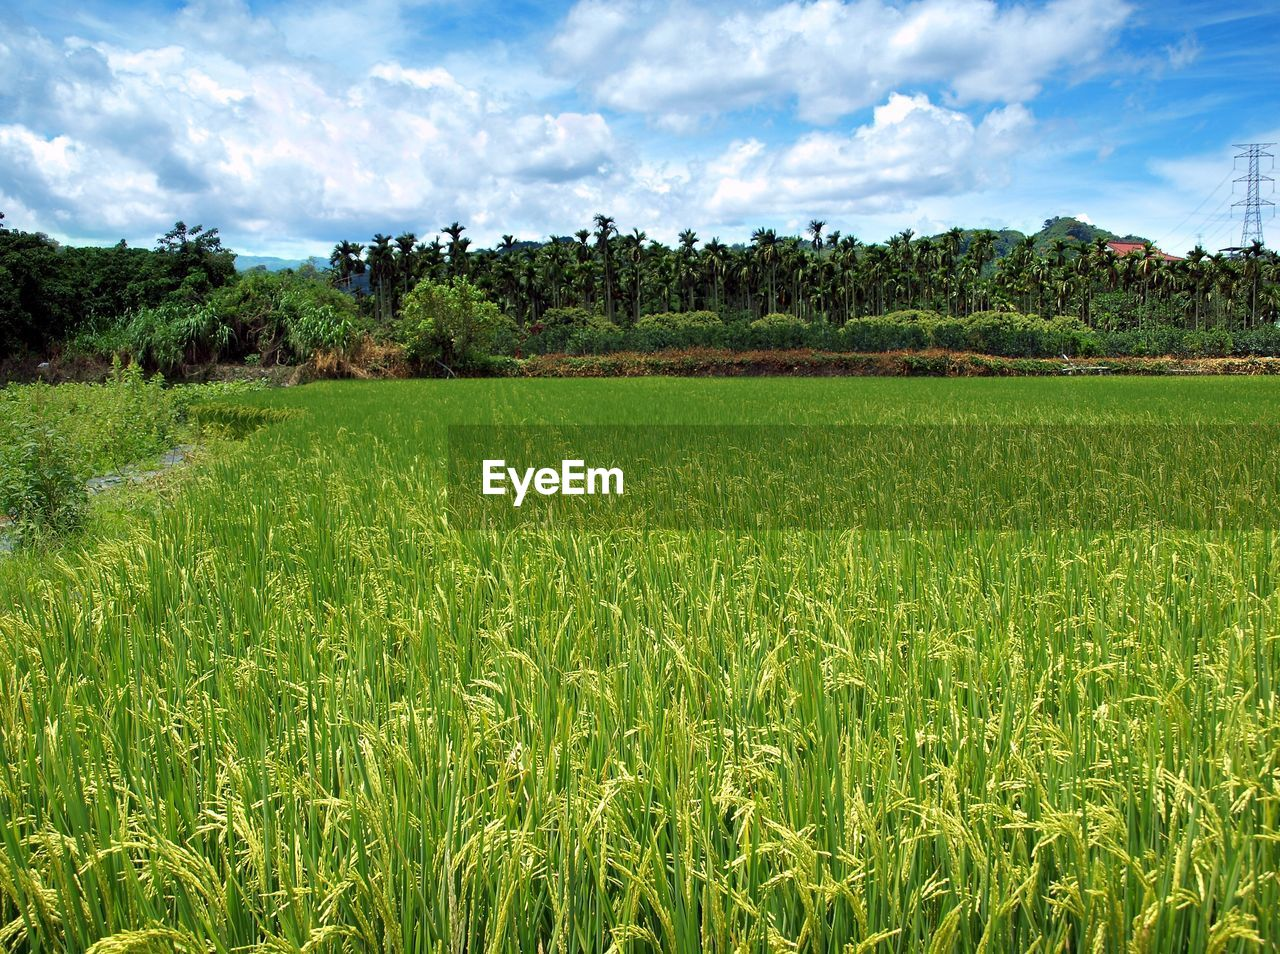 agriculture, field, growth, nature, tree, green color, farm, landscape, sky, rural scene, tranquility, beauty in nature, tranquil scene, crop, cloud - sky, scenics, day, no people, outdoors, cereal plant, grass, rice paddy, freshness